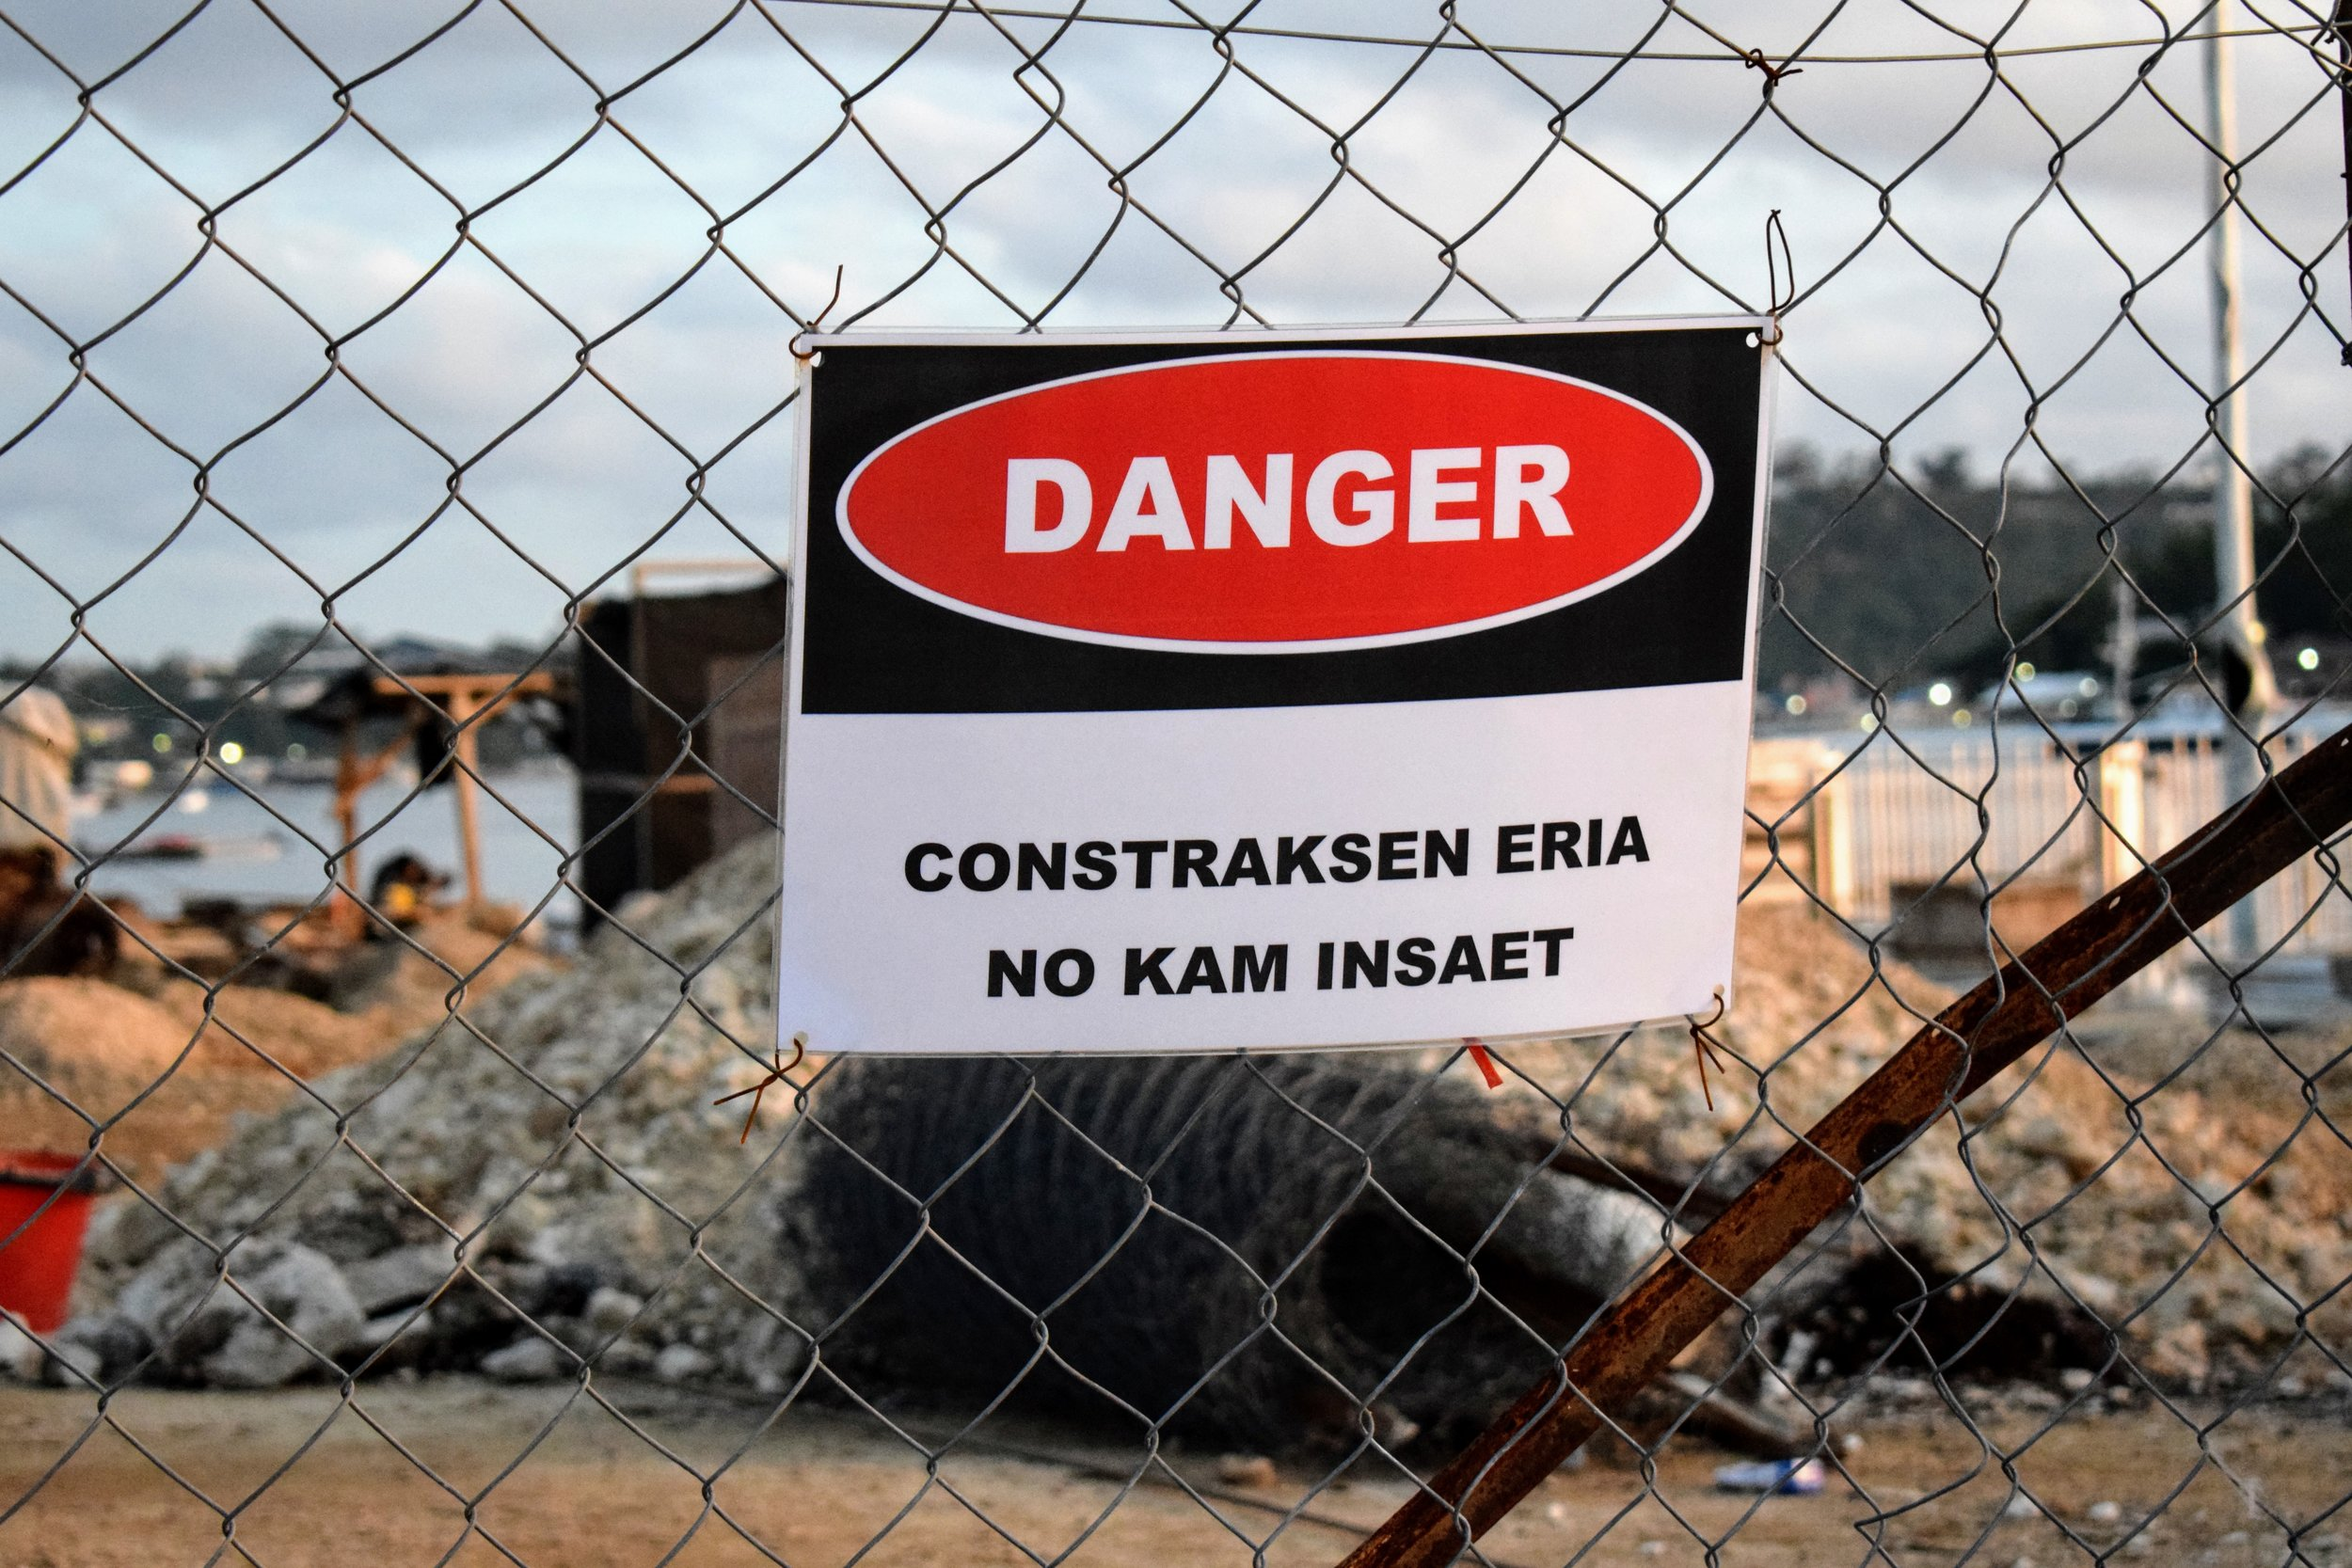 I LOVE this phonetic spelling of construction.